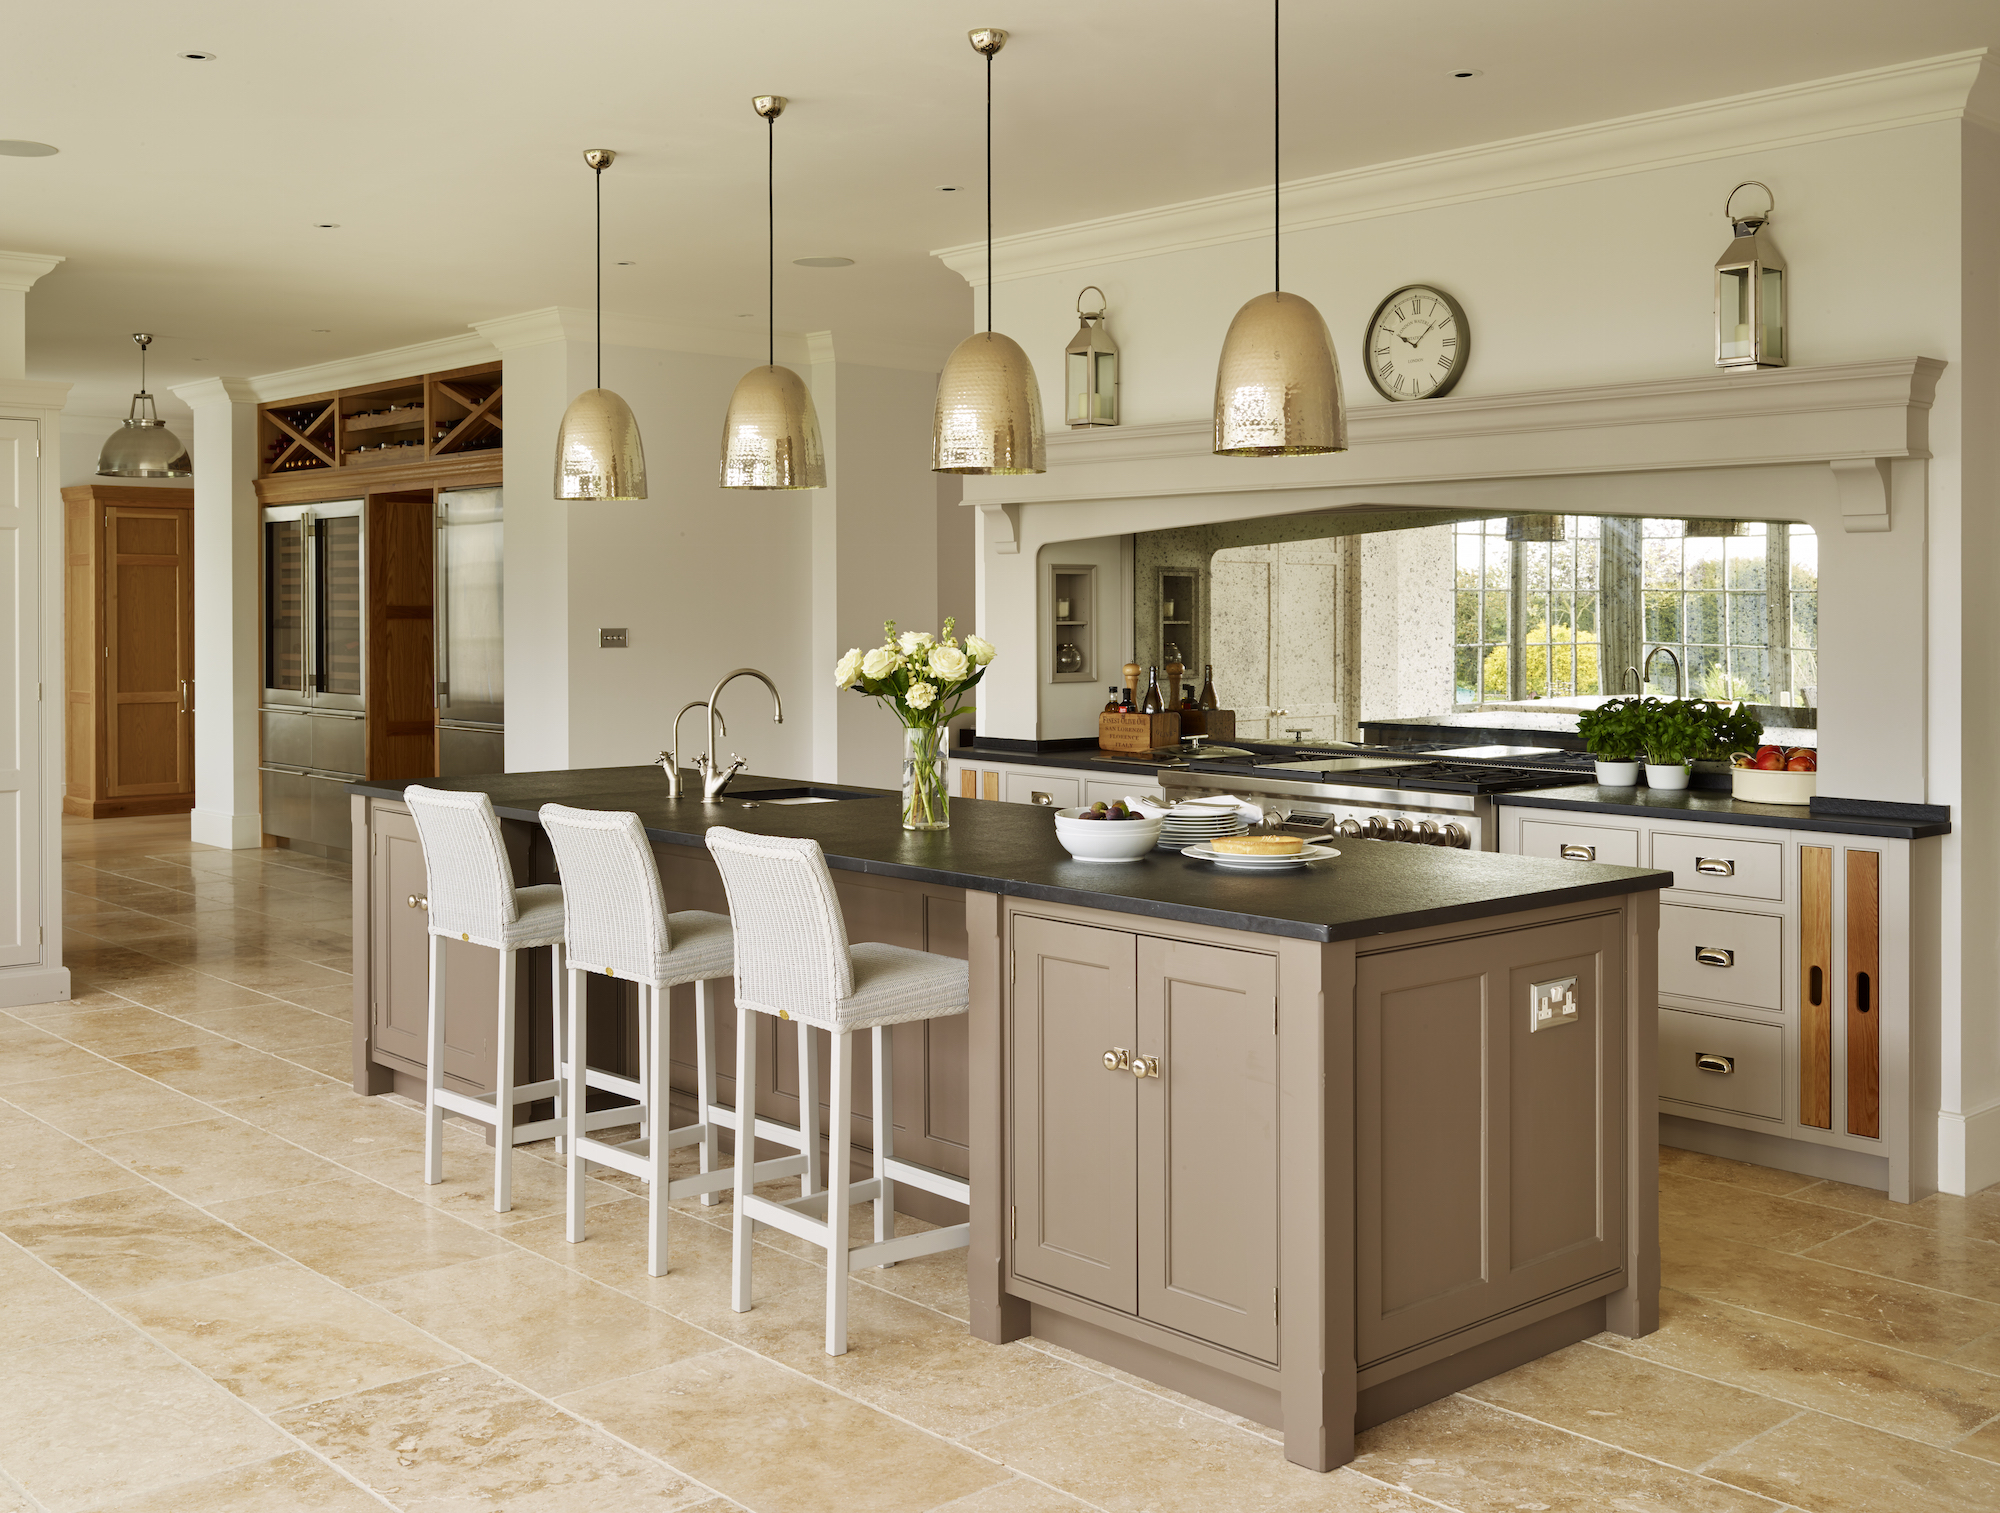 Kitchen Design 66 Beautiful Kitchen Design Ideas For The Heart Of Your Home